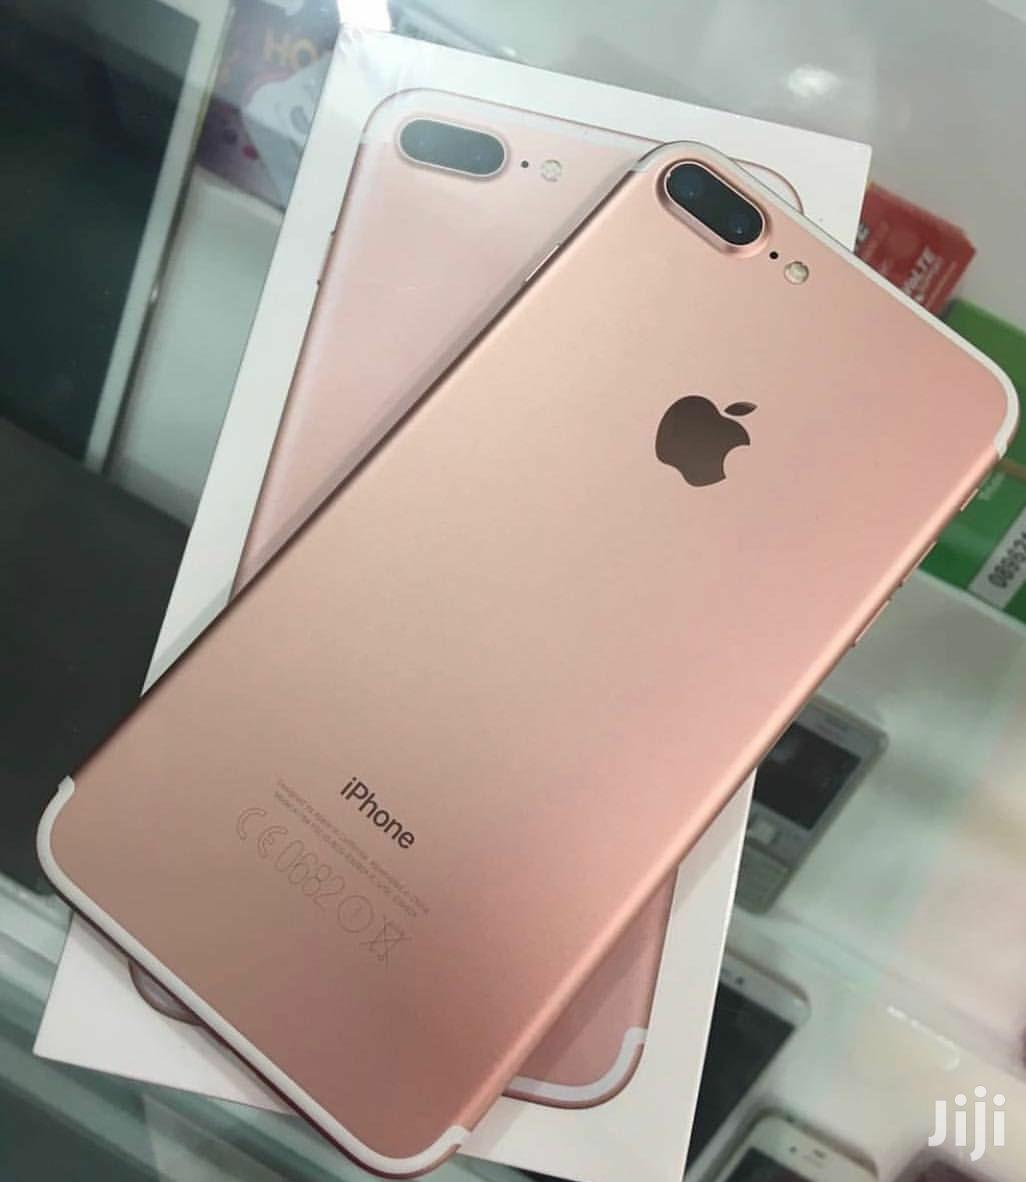 Apple iPhone 7 Plus 128 GB | Mobile Phones for sale in Tema Metropolitan, Greater Accra, Ghana